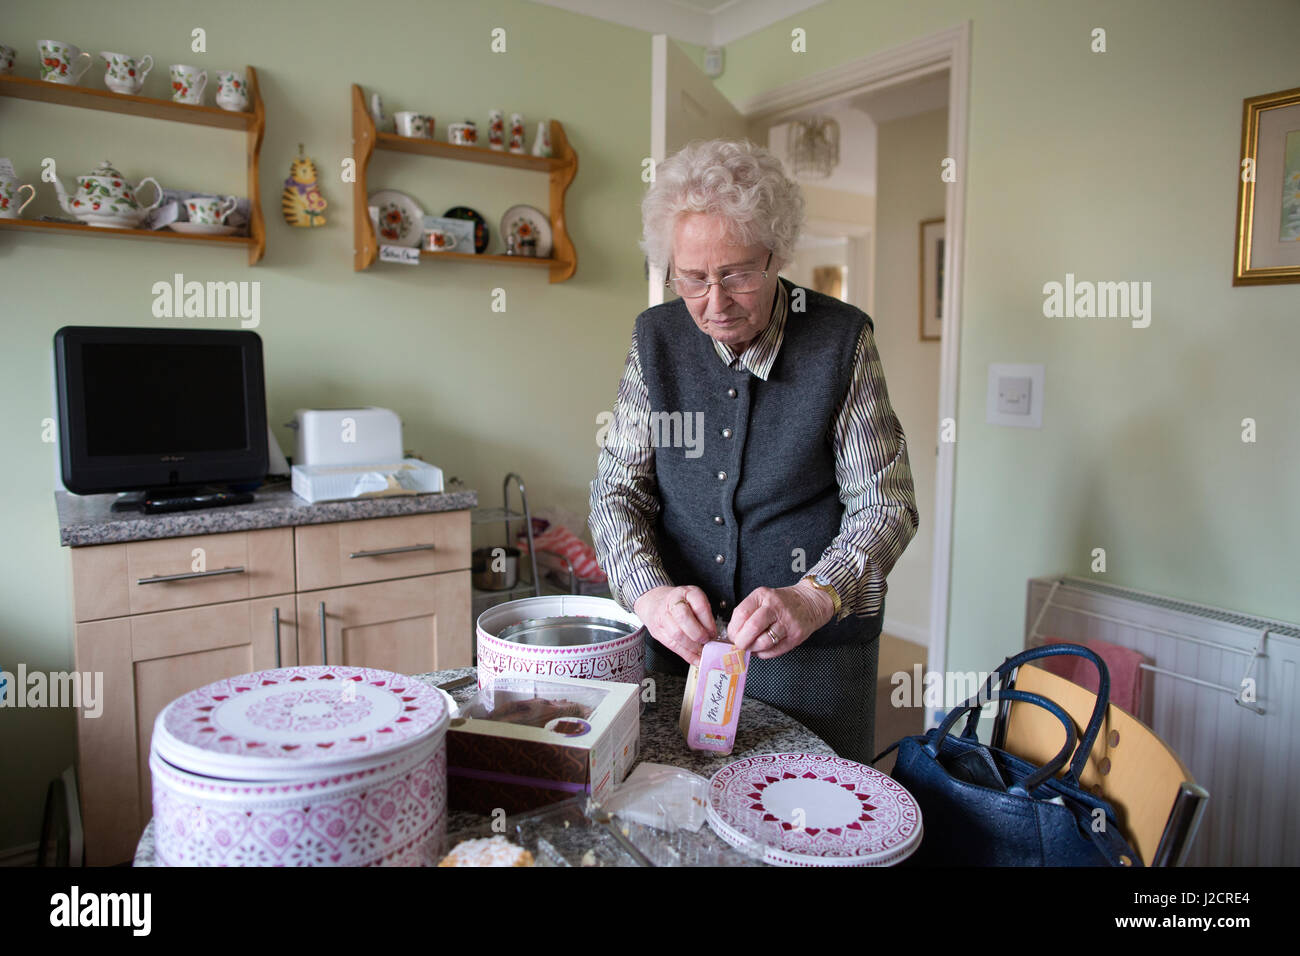 Elderly lady preparing an english teatime with various cakes on her kitchen table, England, United Kingdom - Stock Image